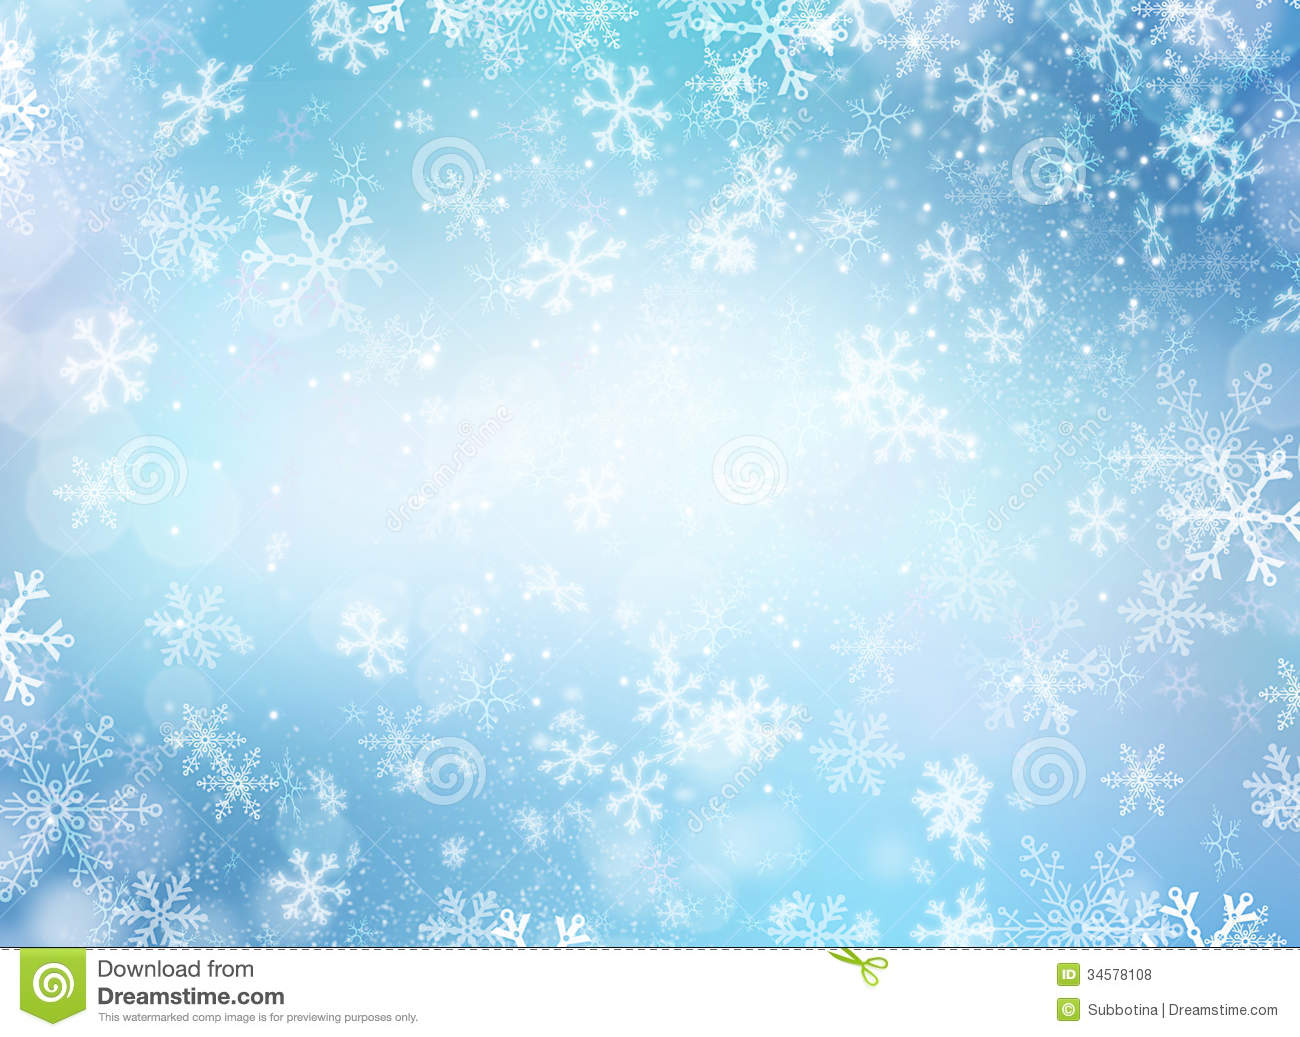 Winter holiday background clipart library 39+ Snow Background Clipart | ClipartLook library